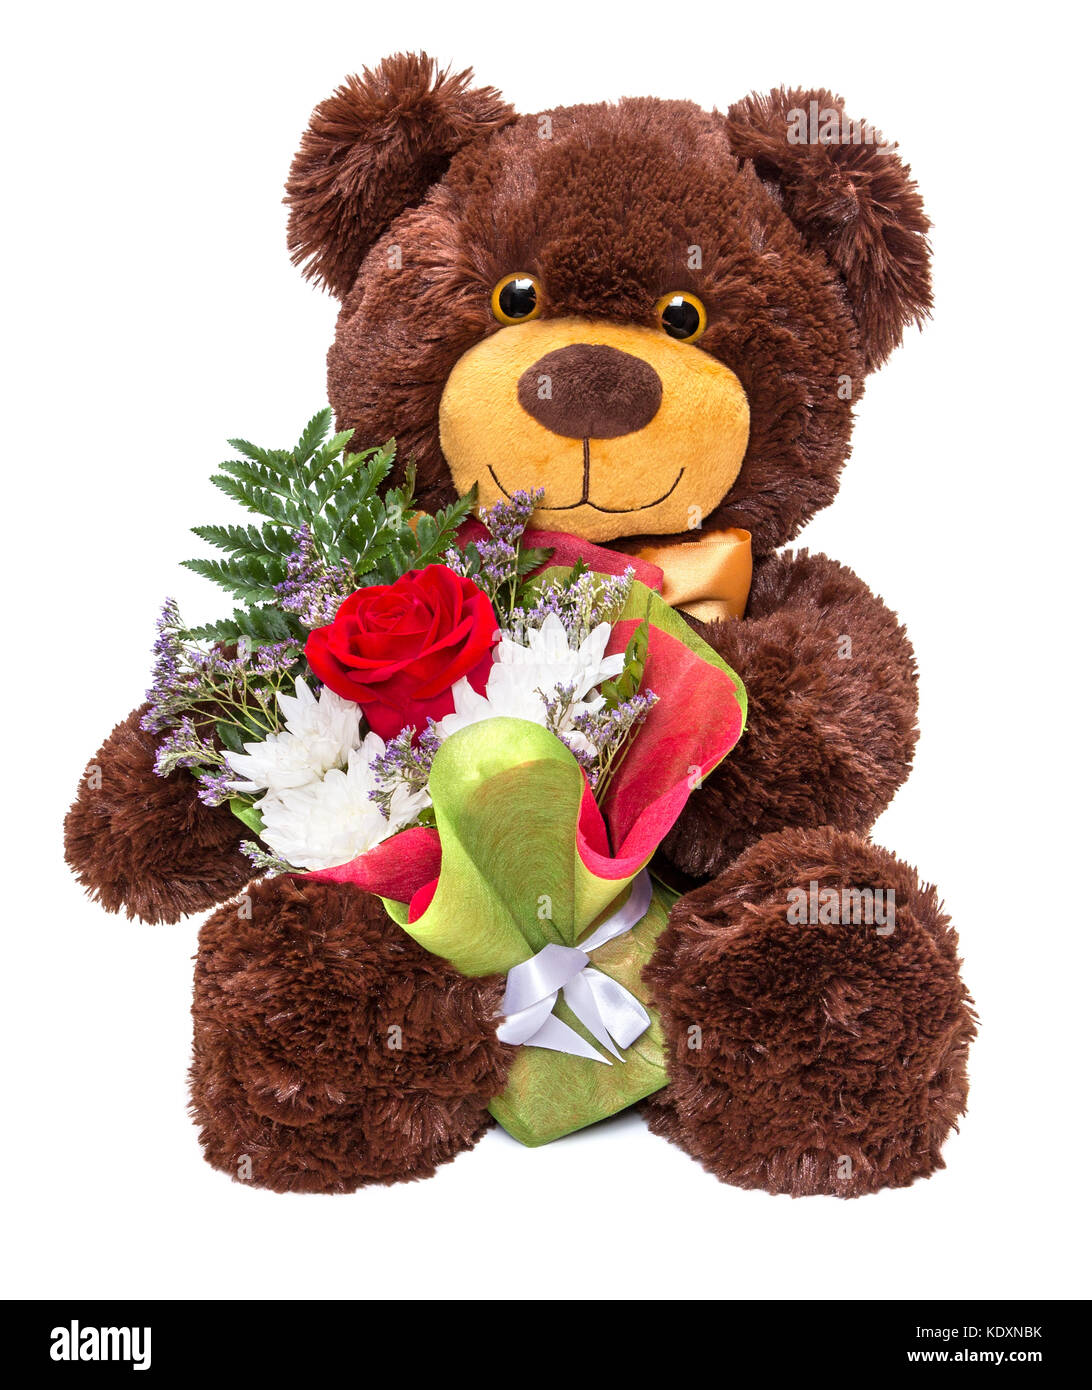 Teddy bear red rose stock photos teddy bear red rose stock images smiling teddy bear holding beautiful floral bouquet in paws on white background stock image izmirmasajfo